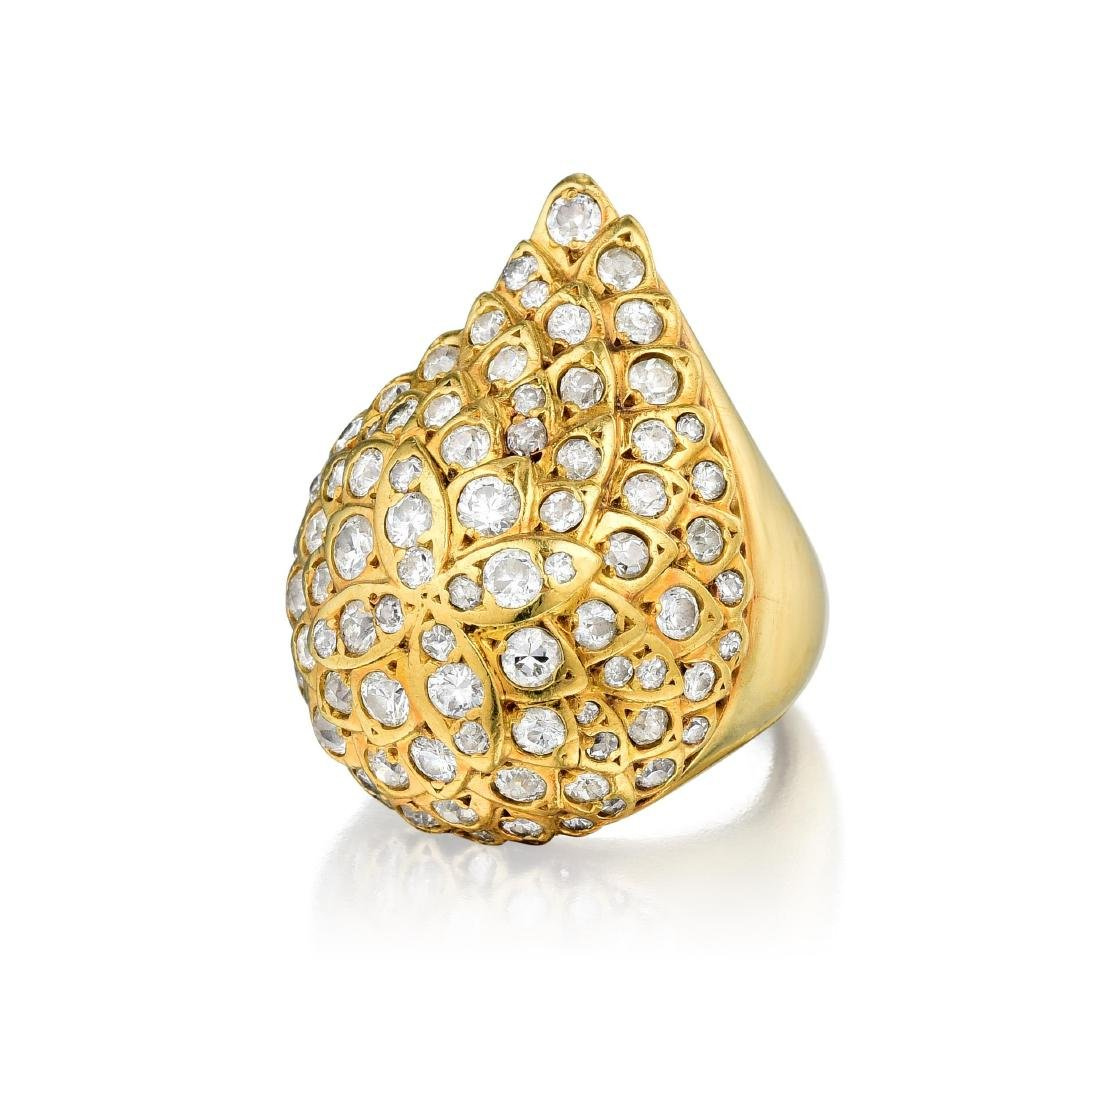 A Modified Gold and Diamond Ring